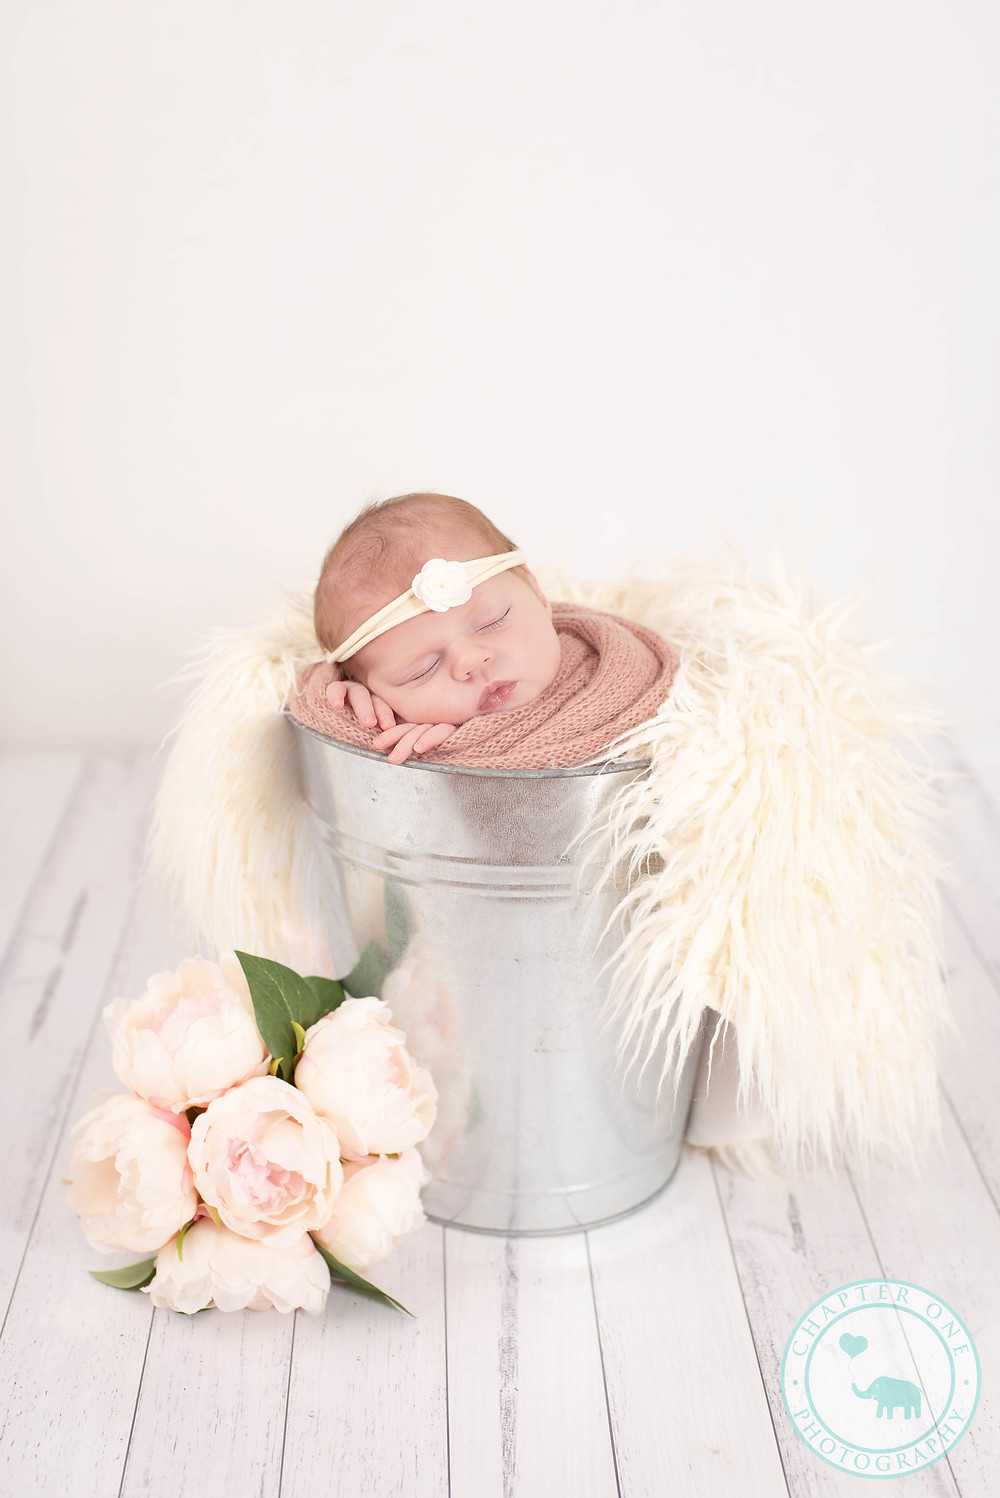 Newborn Girl in a bucket with flowers